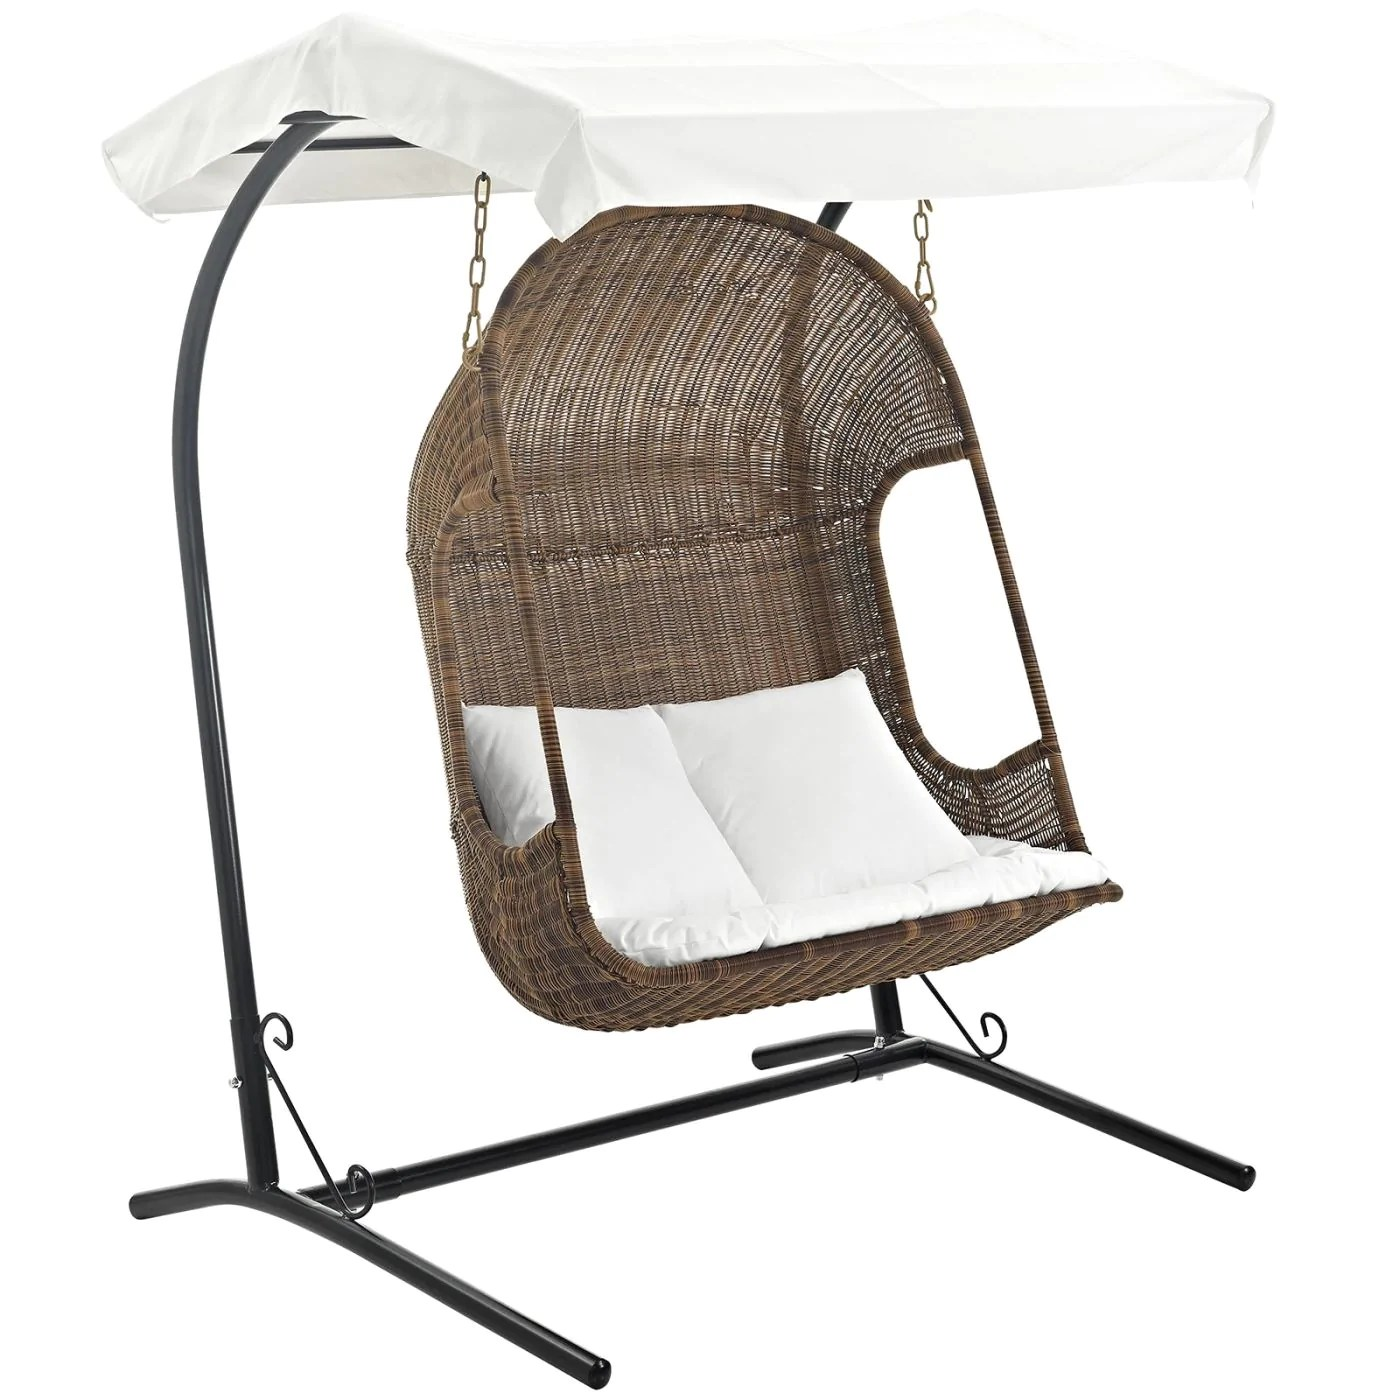 Hanging Patio Chair Modway Outdoor Lounge Chairs On Sale Eei 2278 Brn Whi Set Vantage Outdoor Hanging Patio Swing Chair Only Only 654 00 At Contemporary Furniture